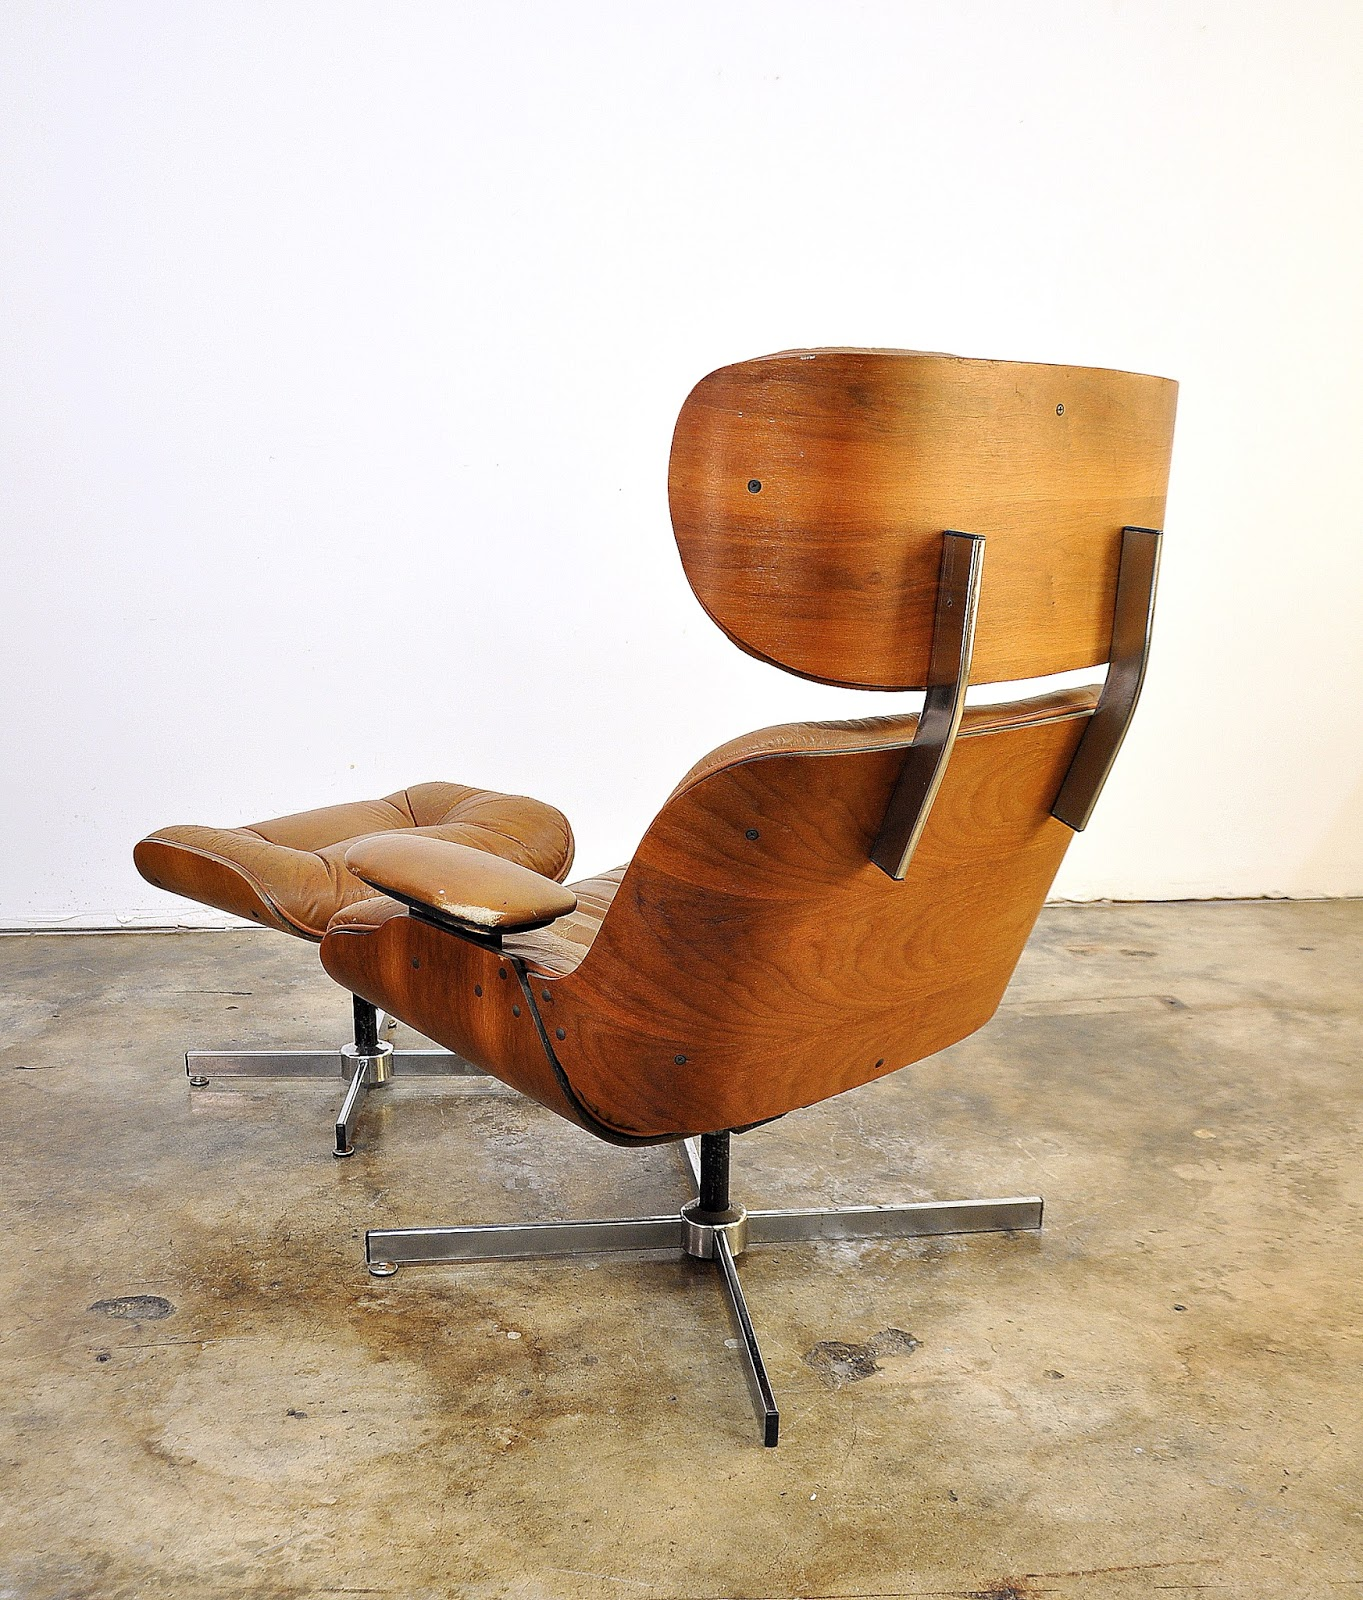 Select modern frank doerner for selig eames style butterscotch lounge chair ottoman - Selig eames chair ...